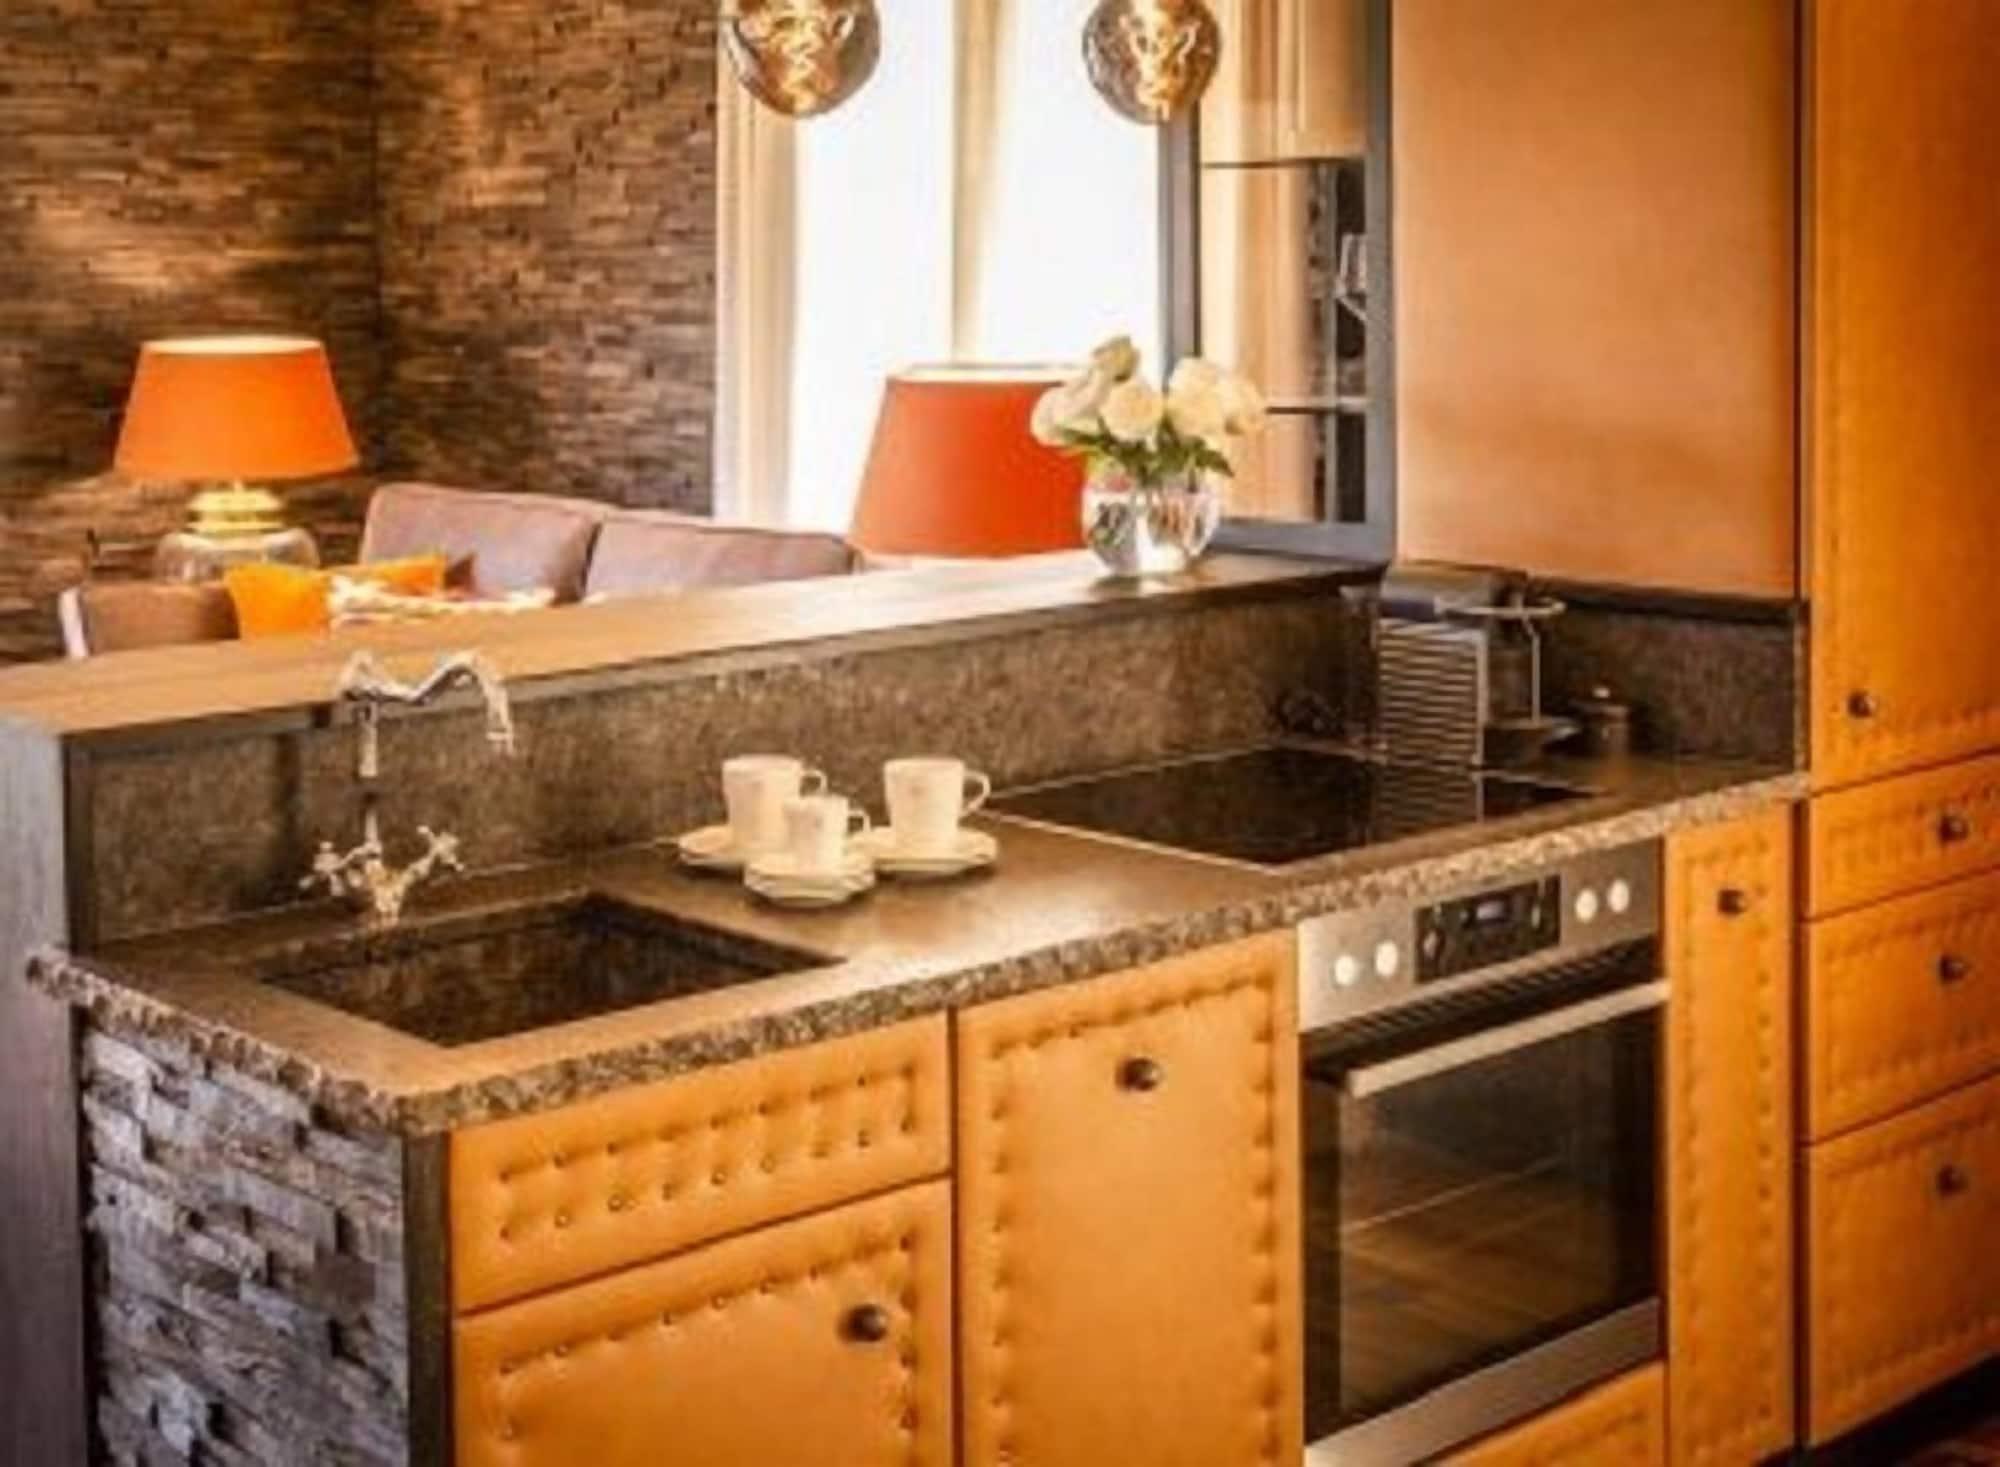 Golden Hill Country Chalets & Suites, Leibnitz